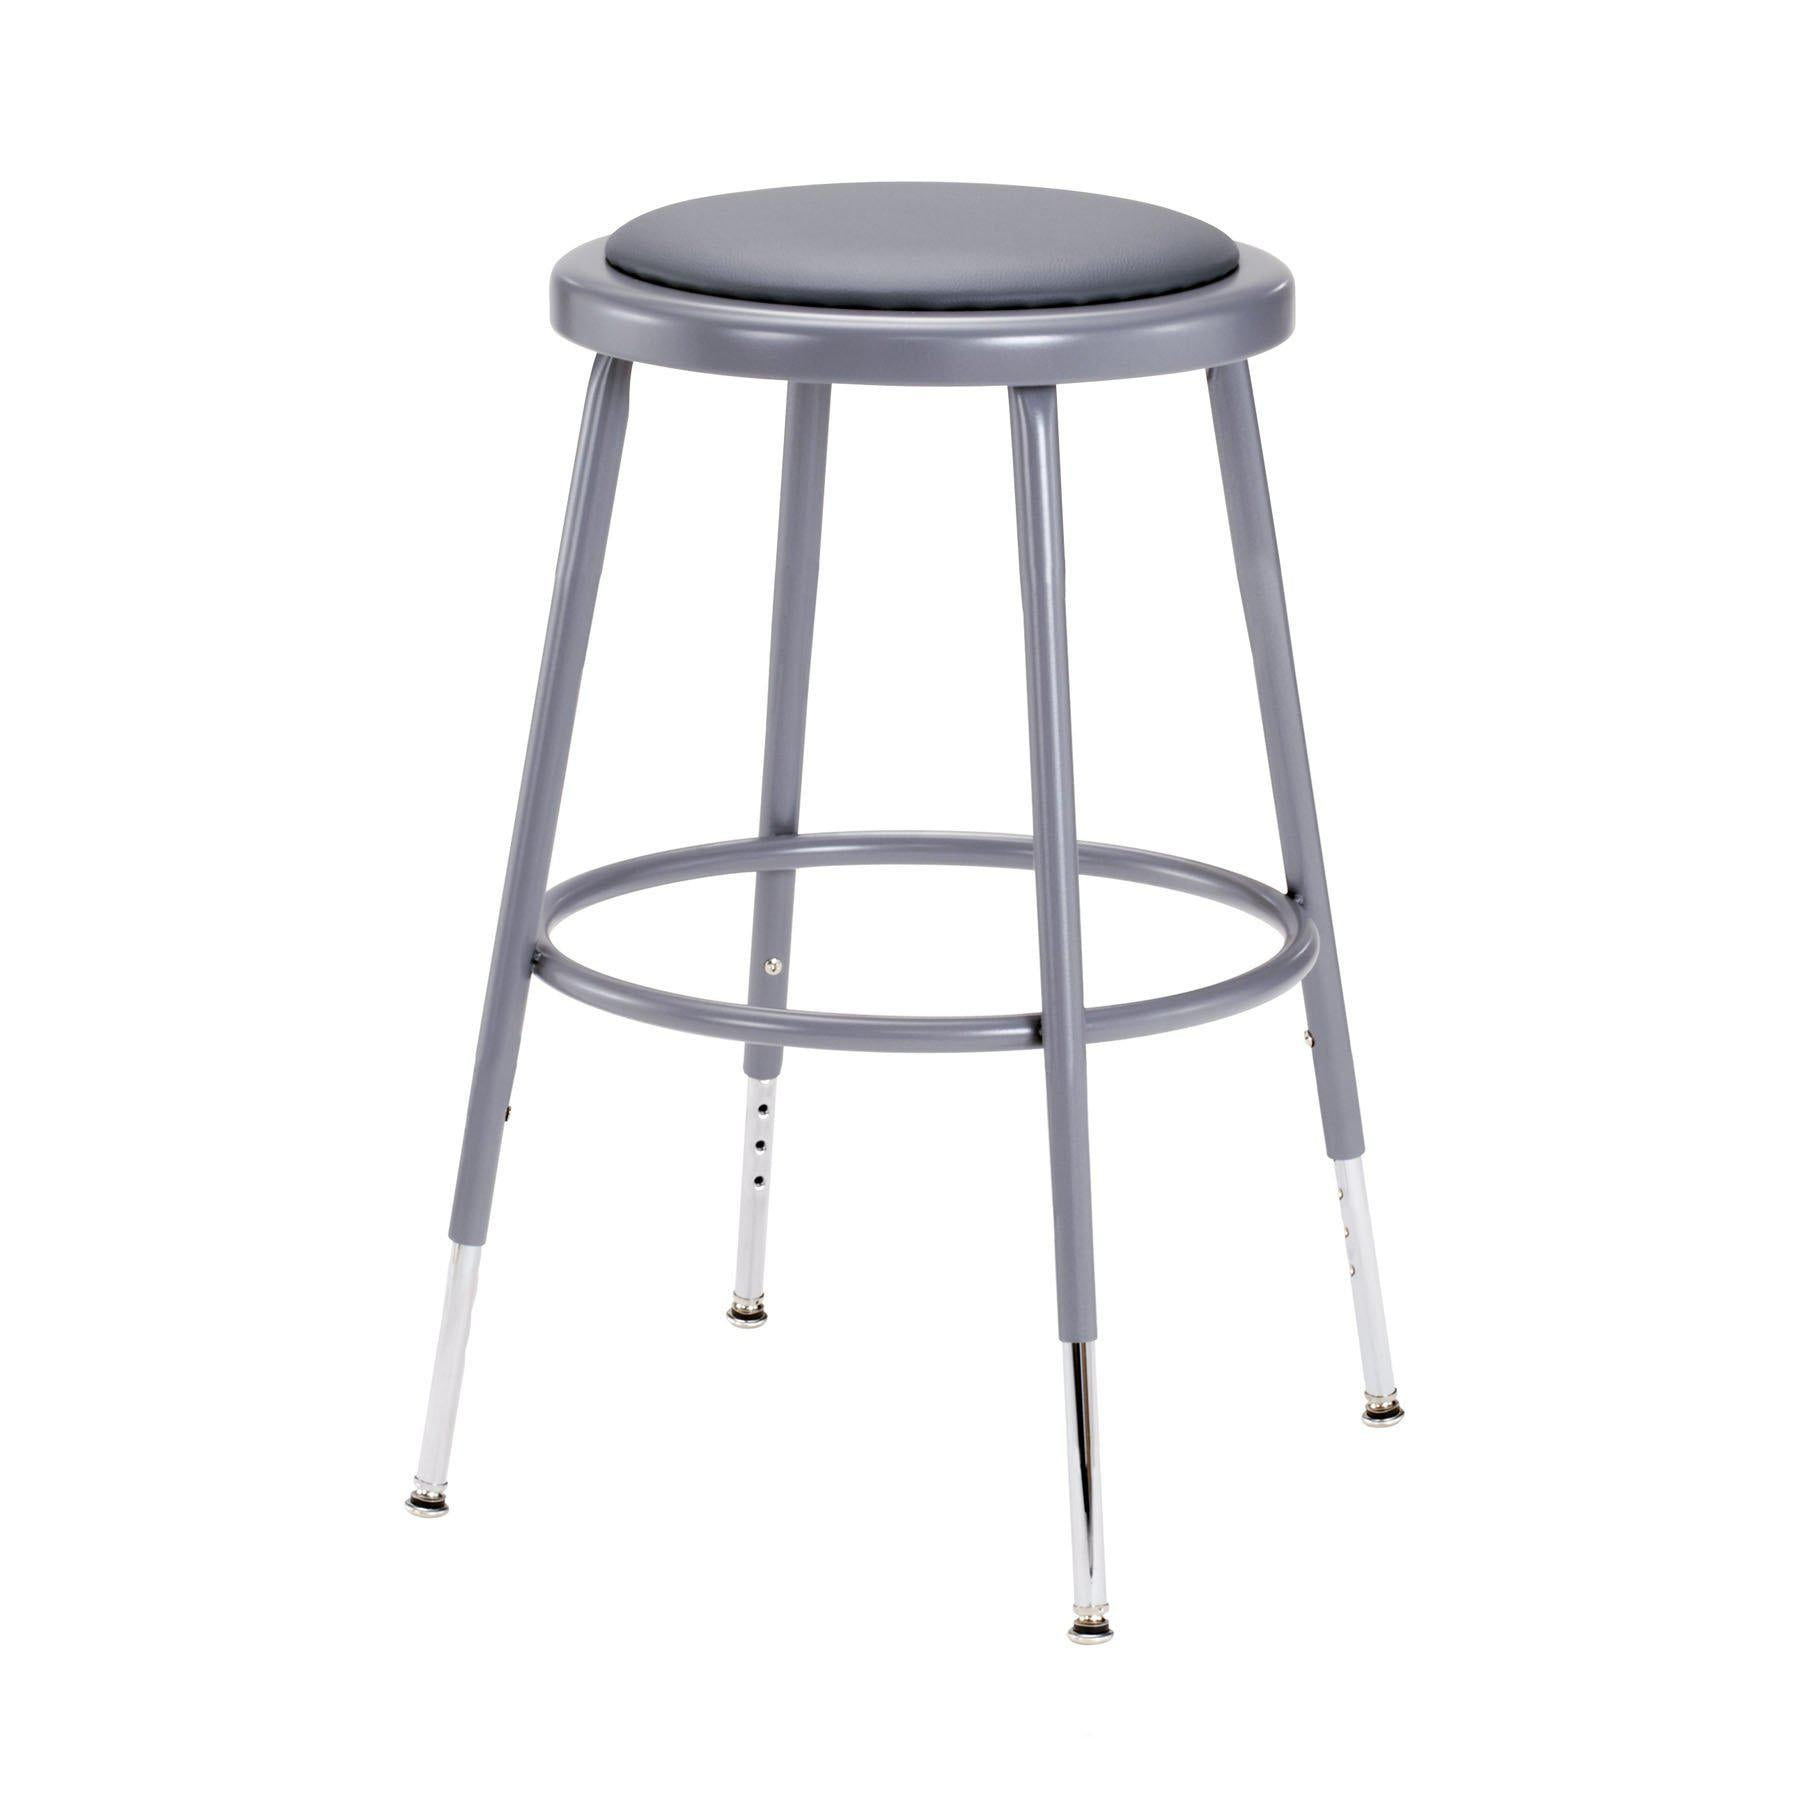 "Height Adjustable Heavy Duty Vinyl Padded Steel Stool-Stools-Grey-19"" - 27""-"